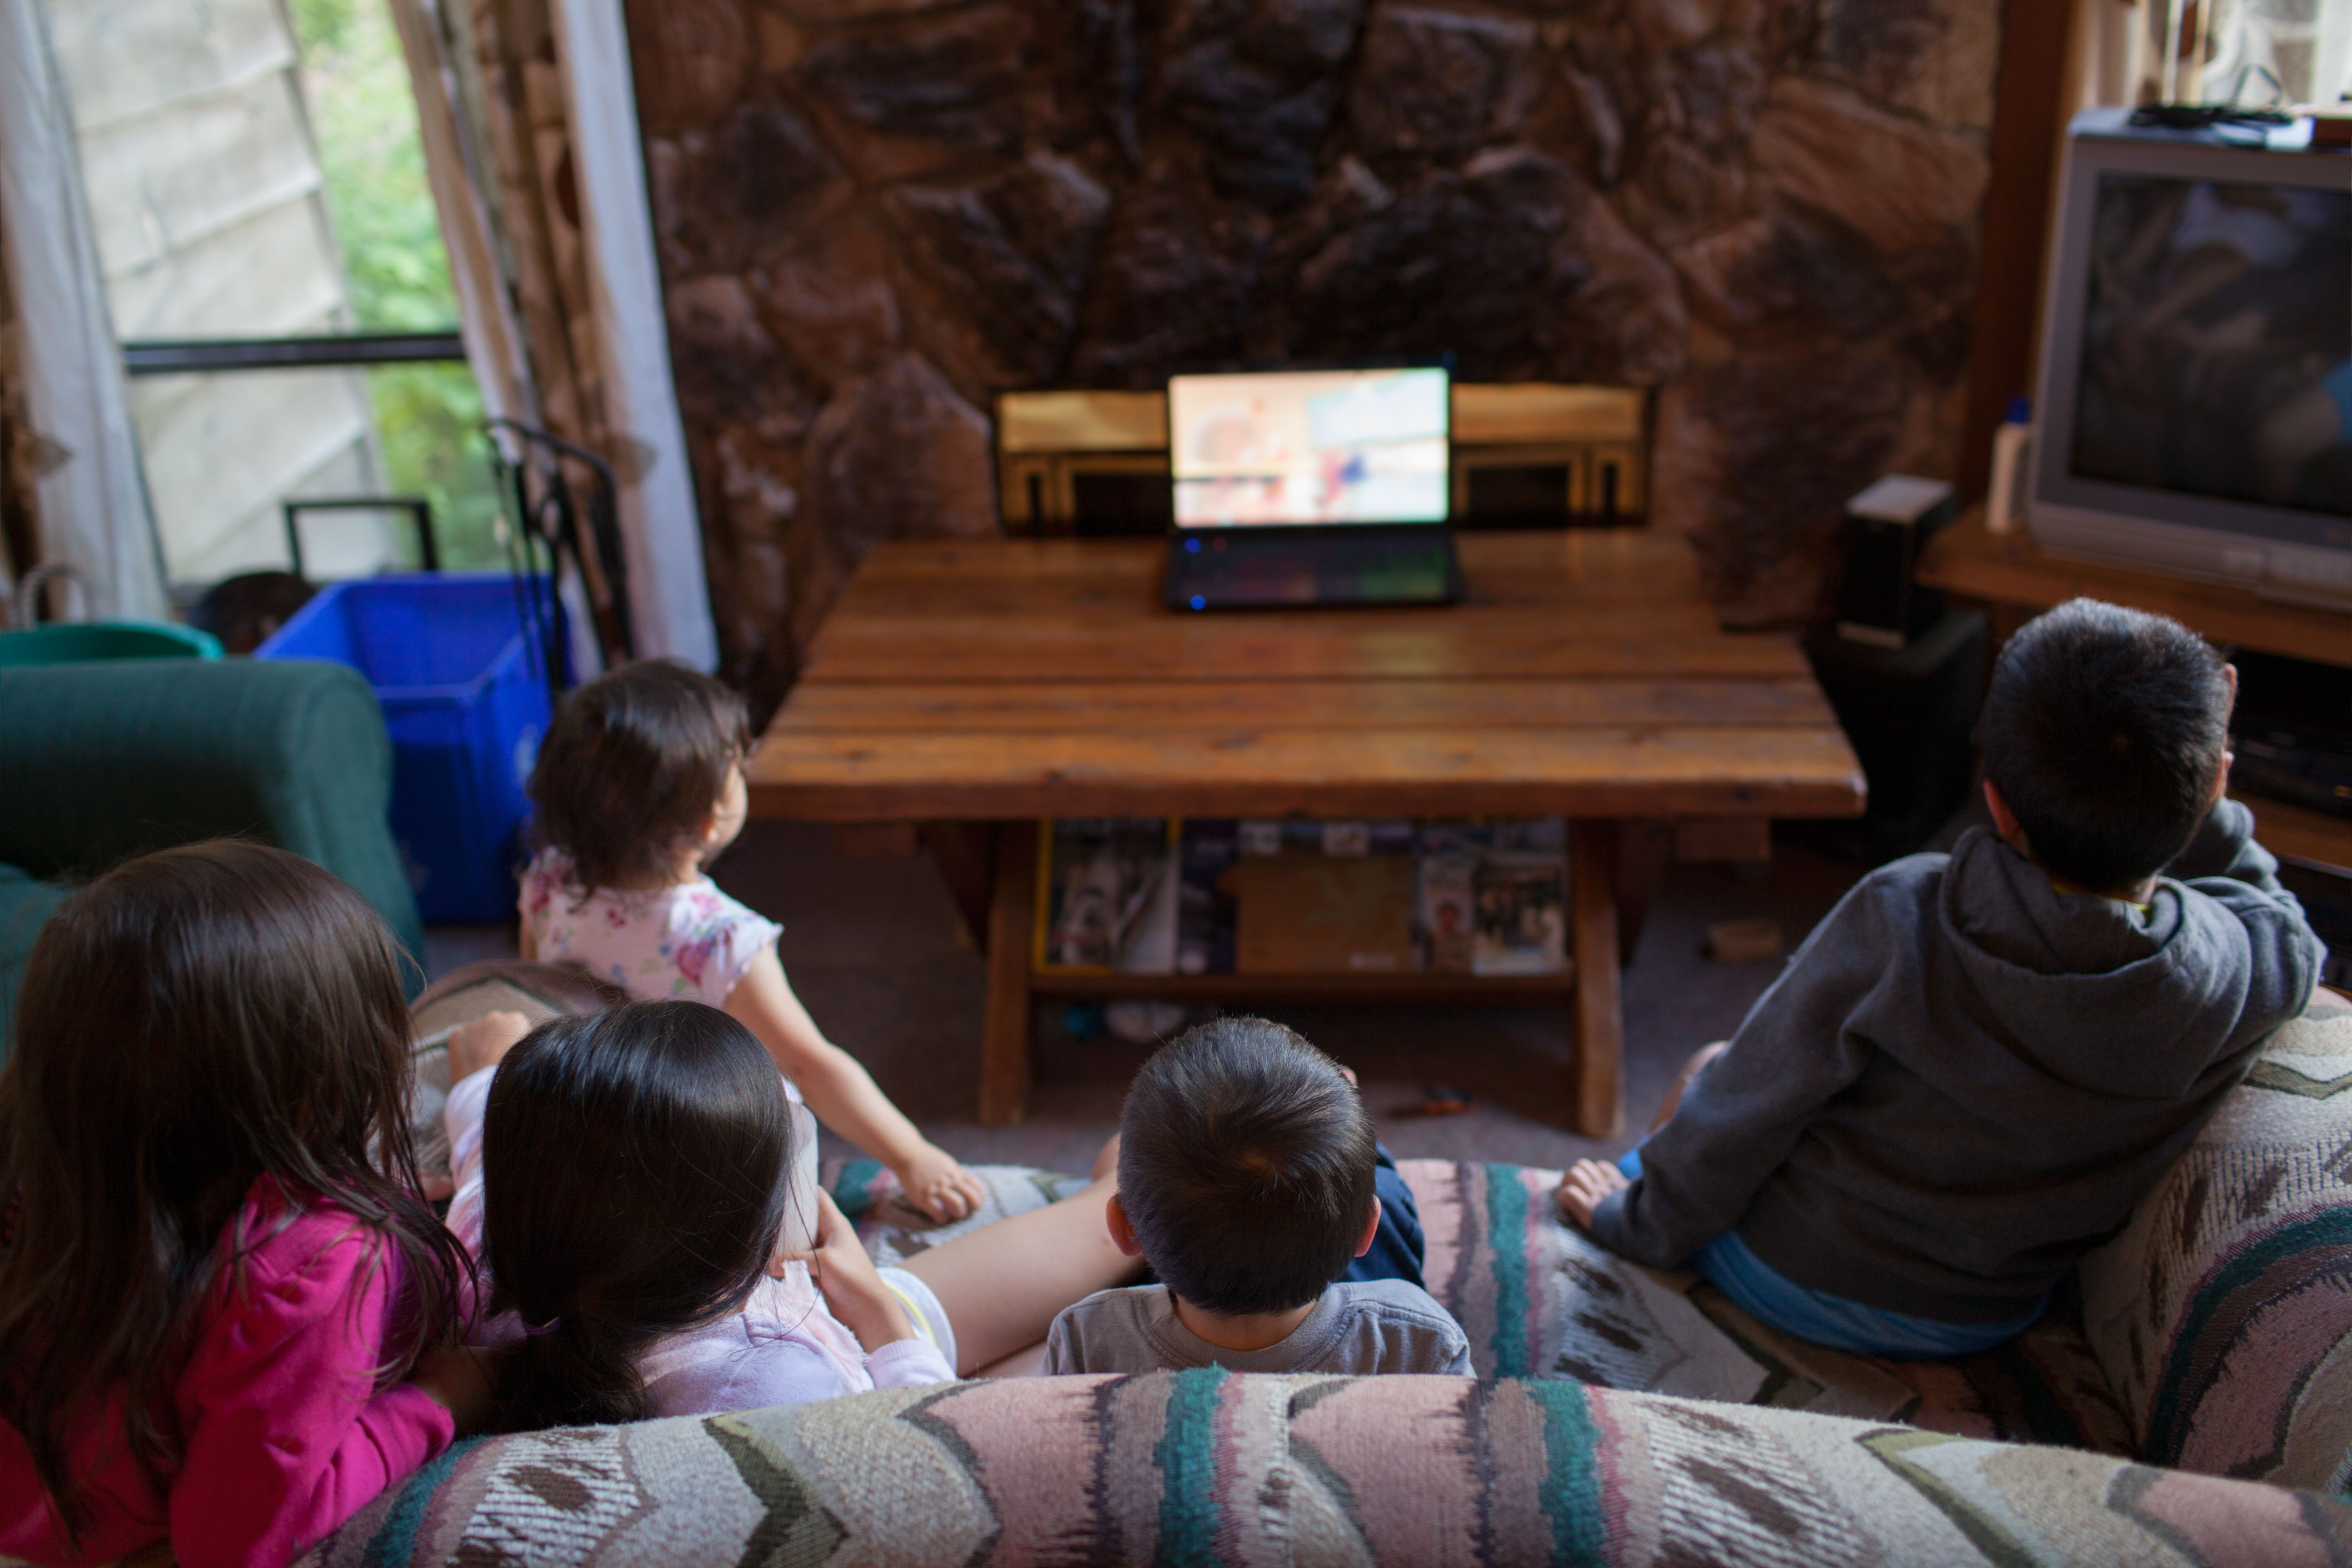 8 Places to Watch Free Kids Movies line